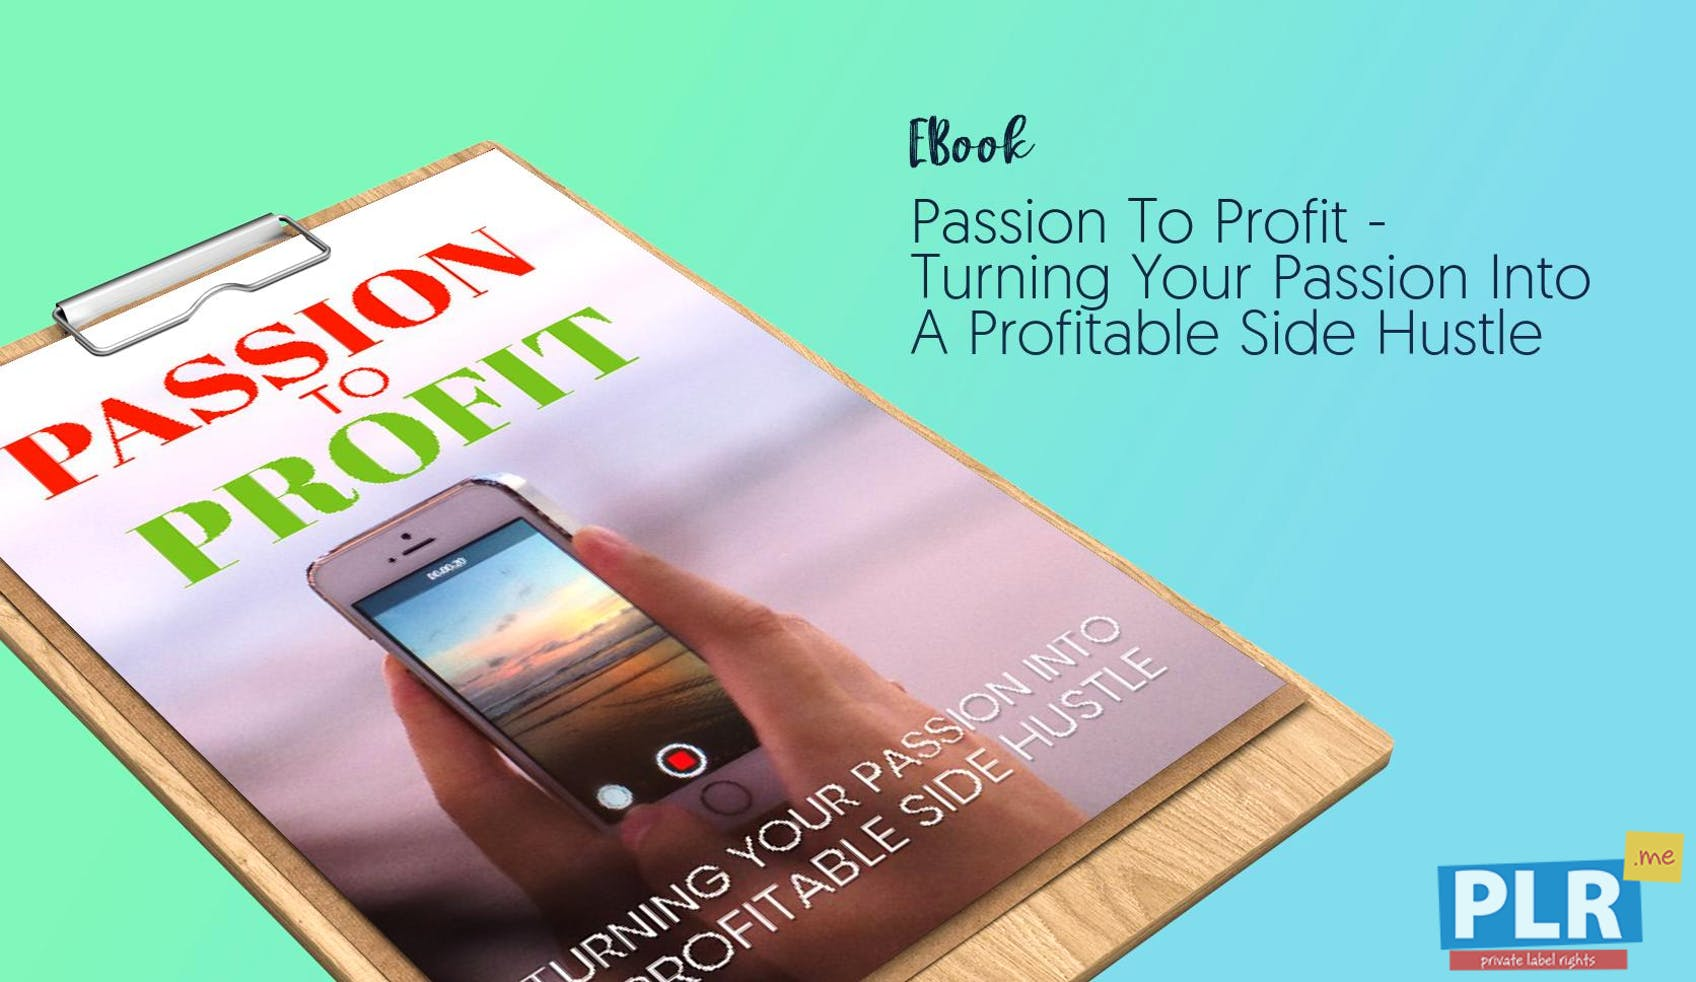 Passion To Profit - Turning Your Passion Into A Profitable Side Hustle